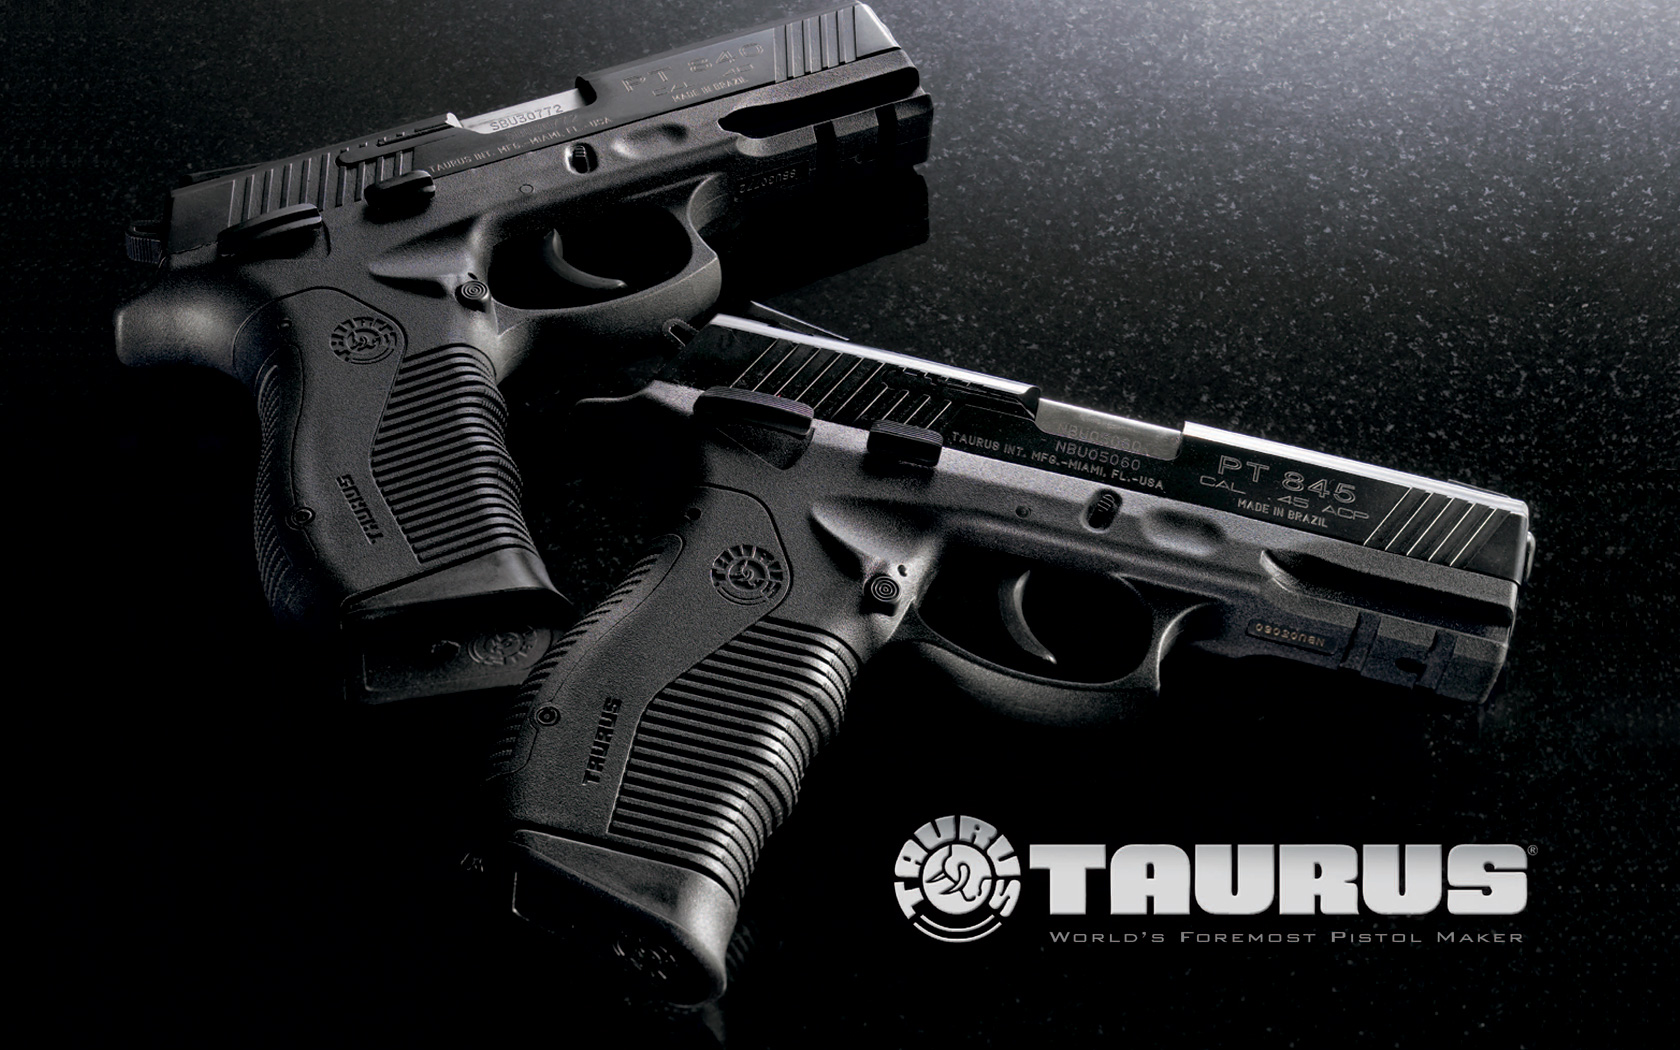 accessories home taurus download area back taurus downloads wallpapers 1680x1050